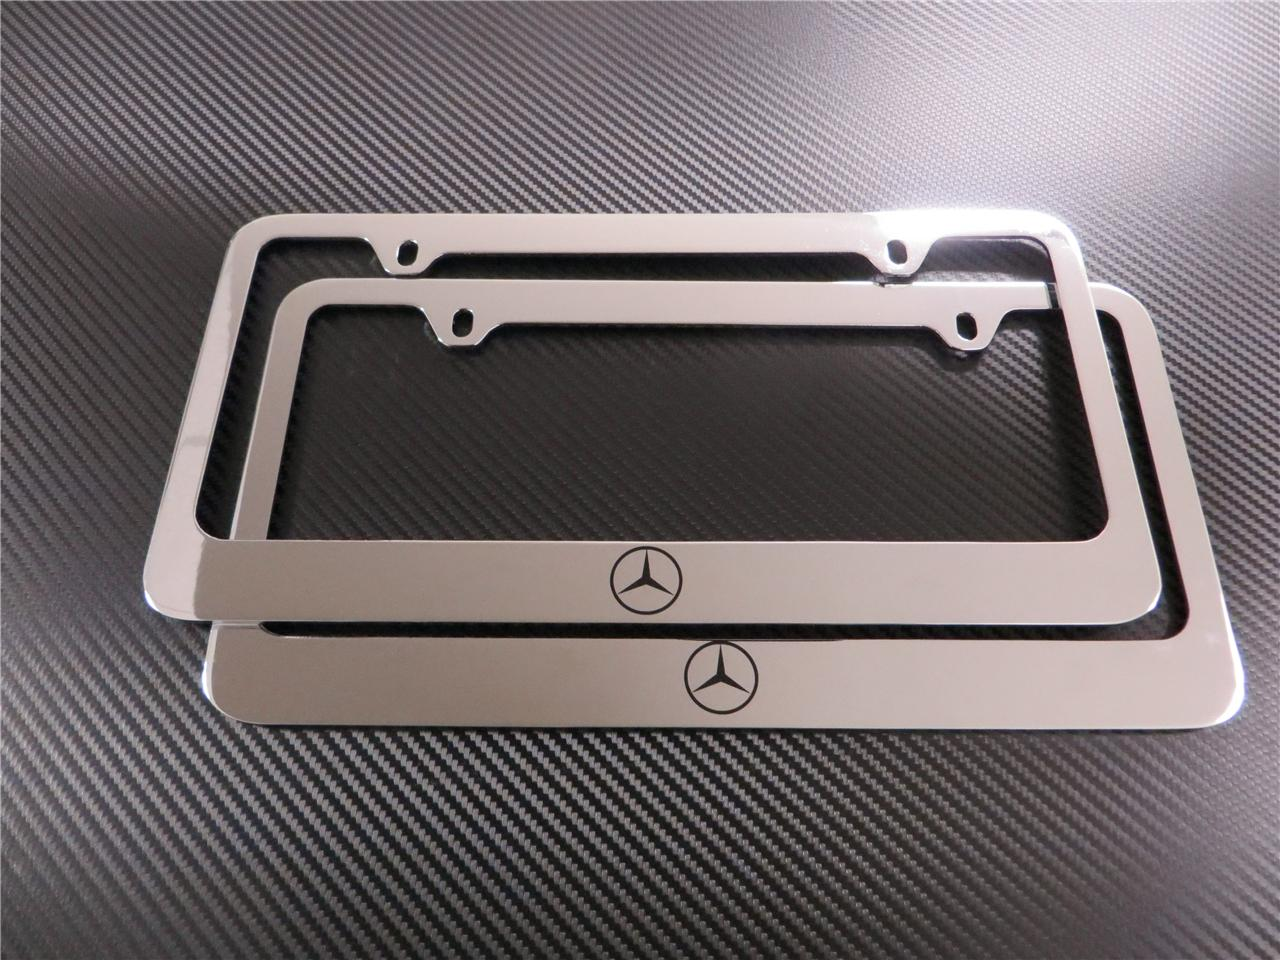 buy 2pcs mercedes benz logo e class chrome metal